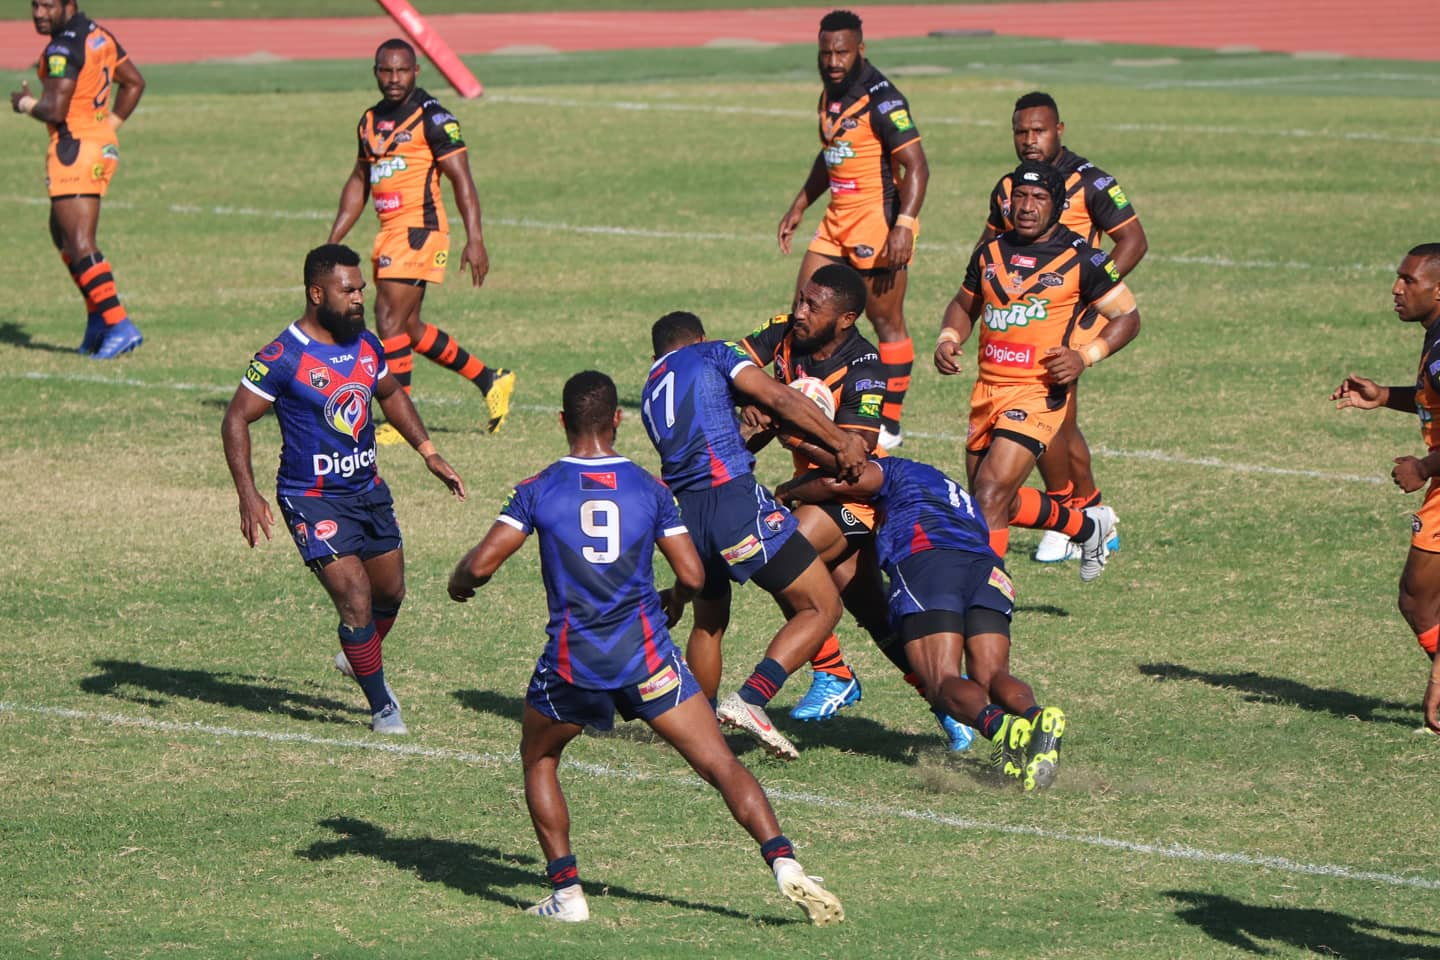 Tigers and Gurias record big wins in Round Two of Digicel Cup